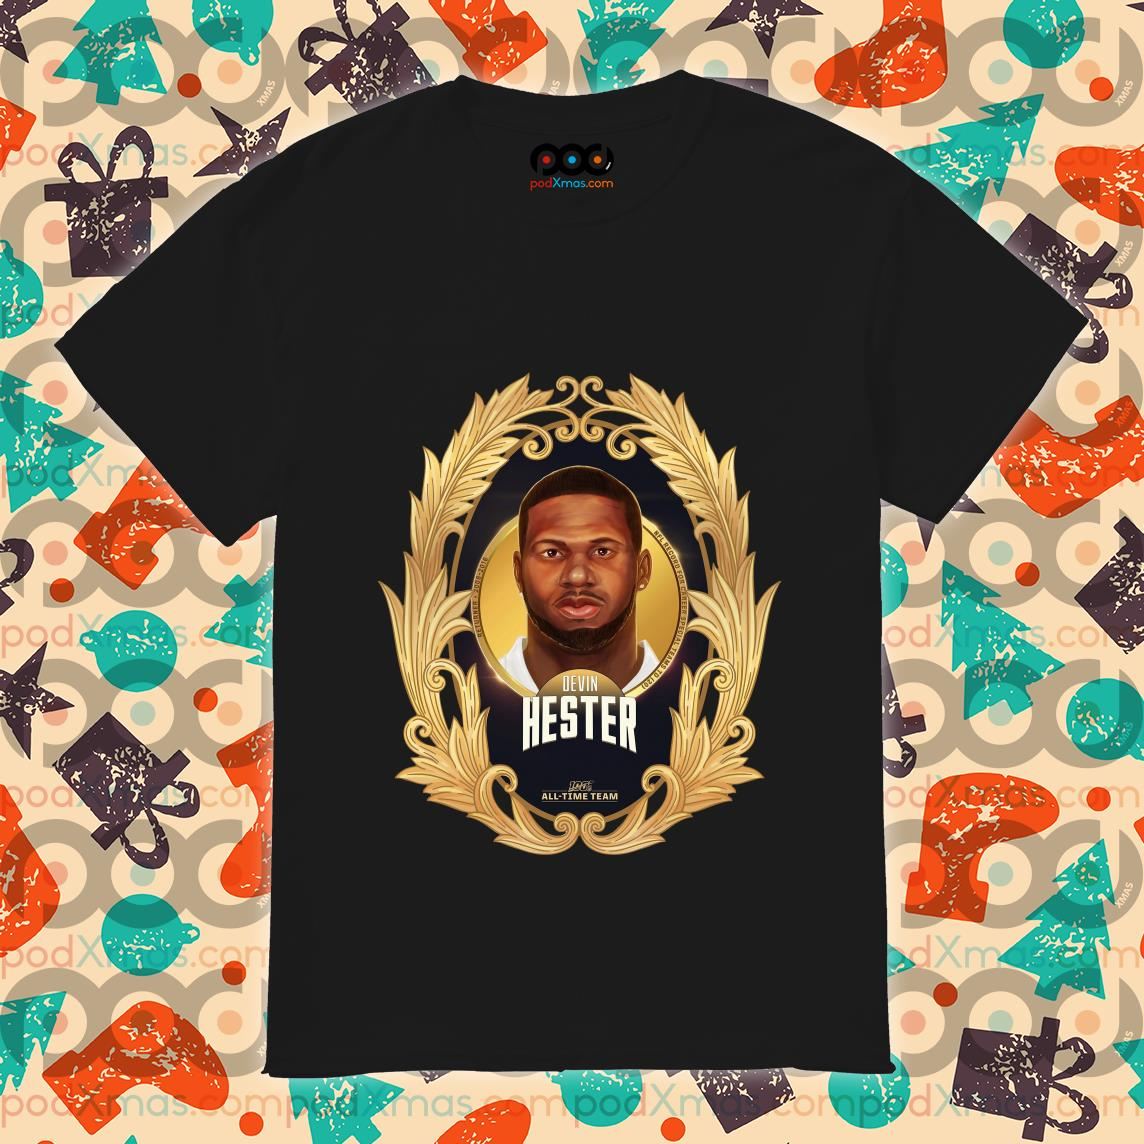 NFL 100 All-Time Team Devin Hester shirt